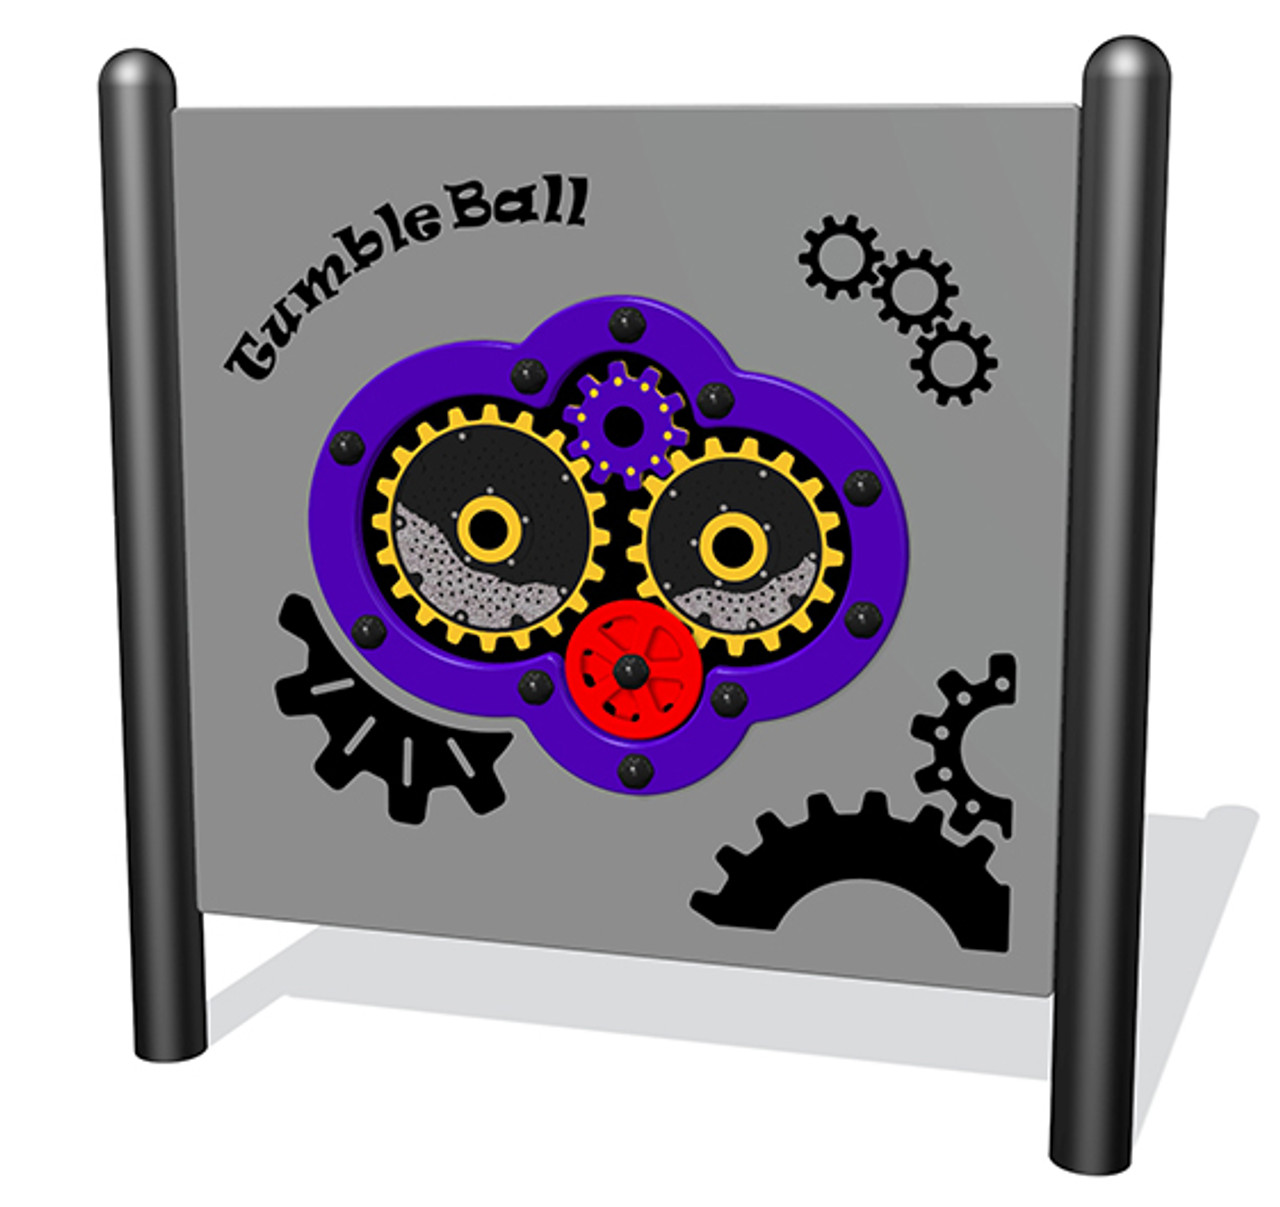 Tumble Ball Activity Panel